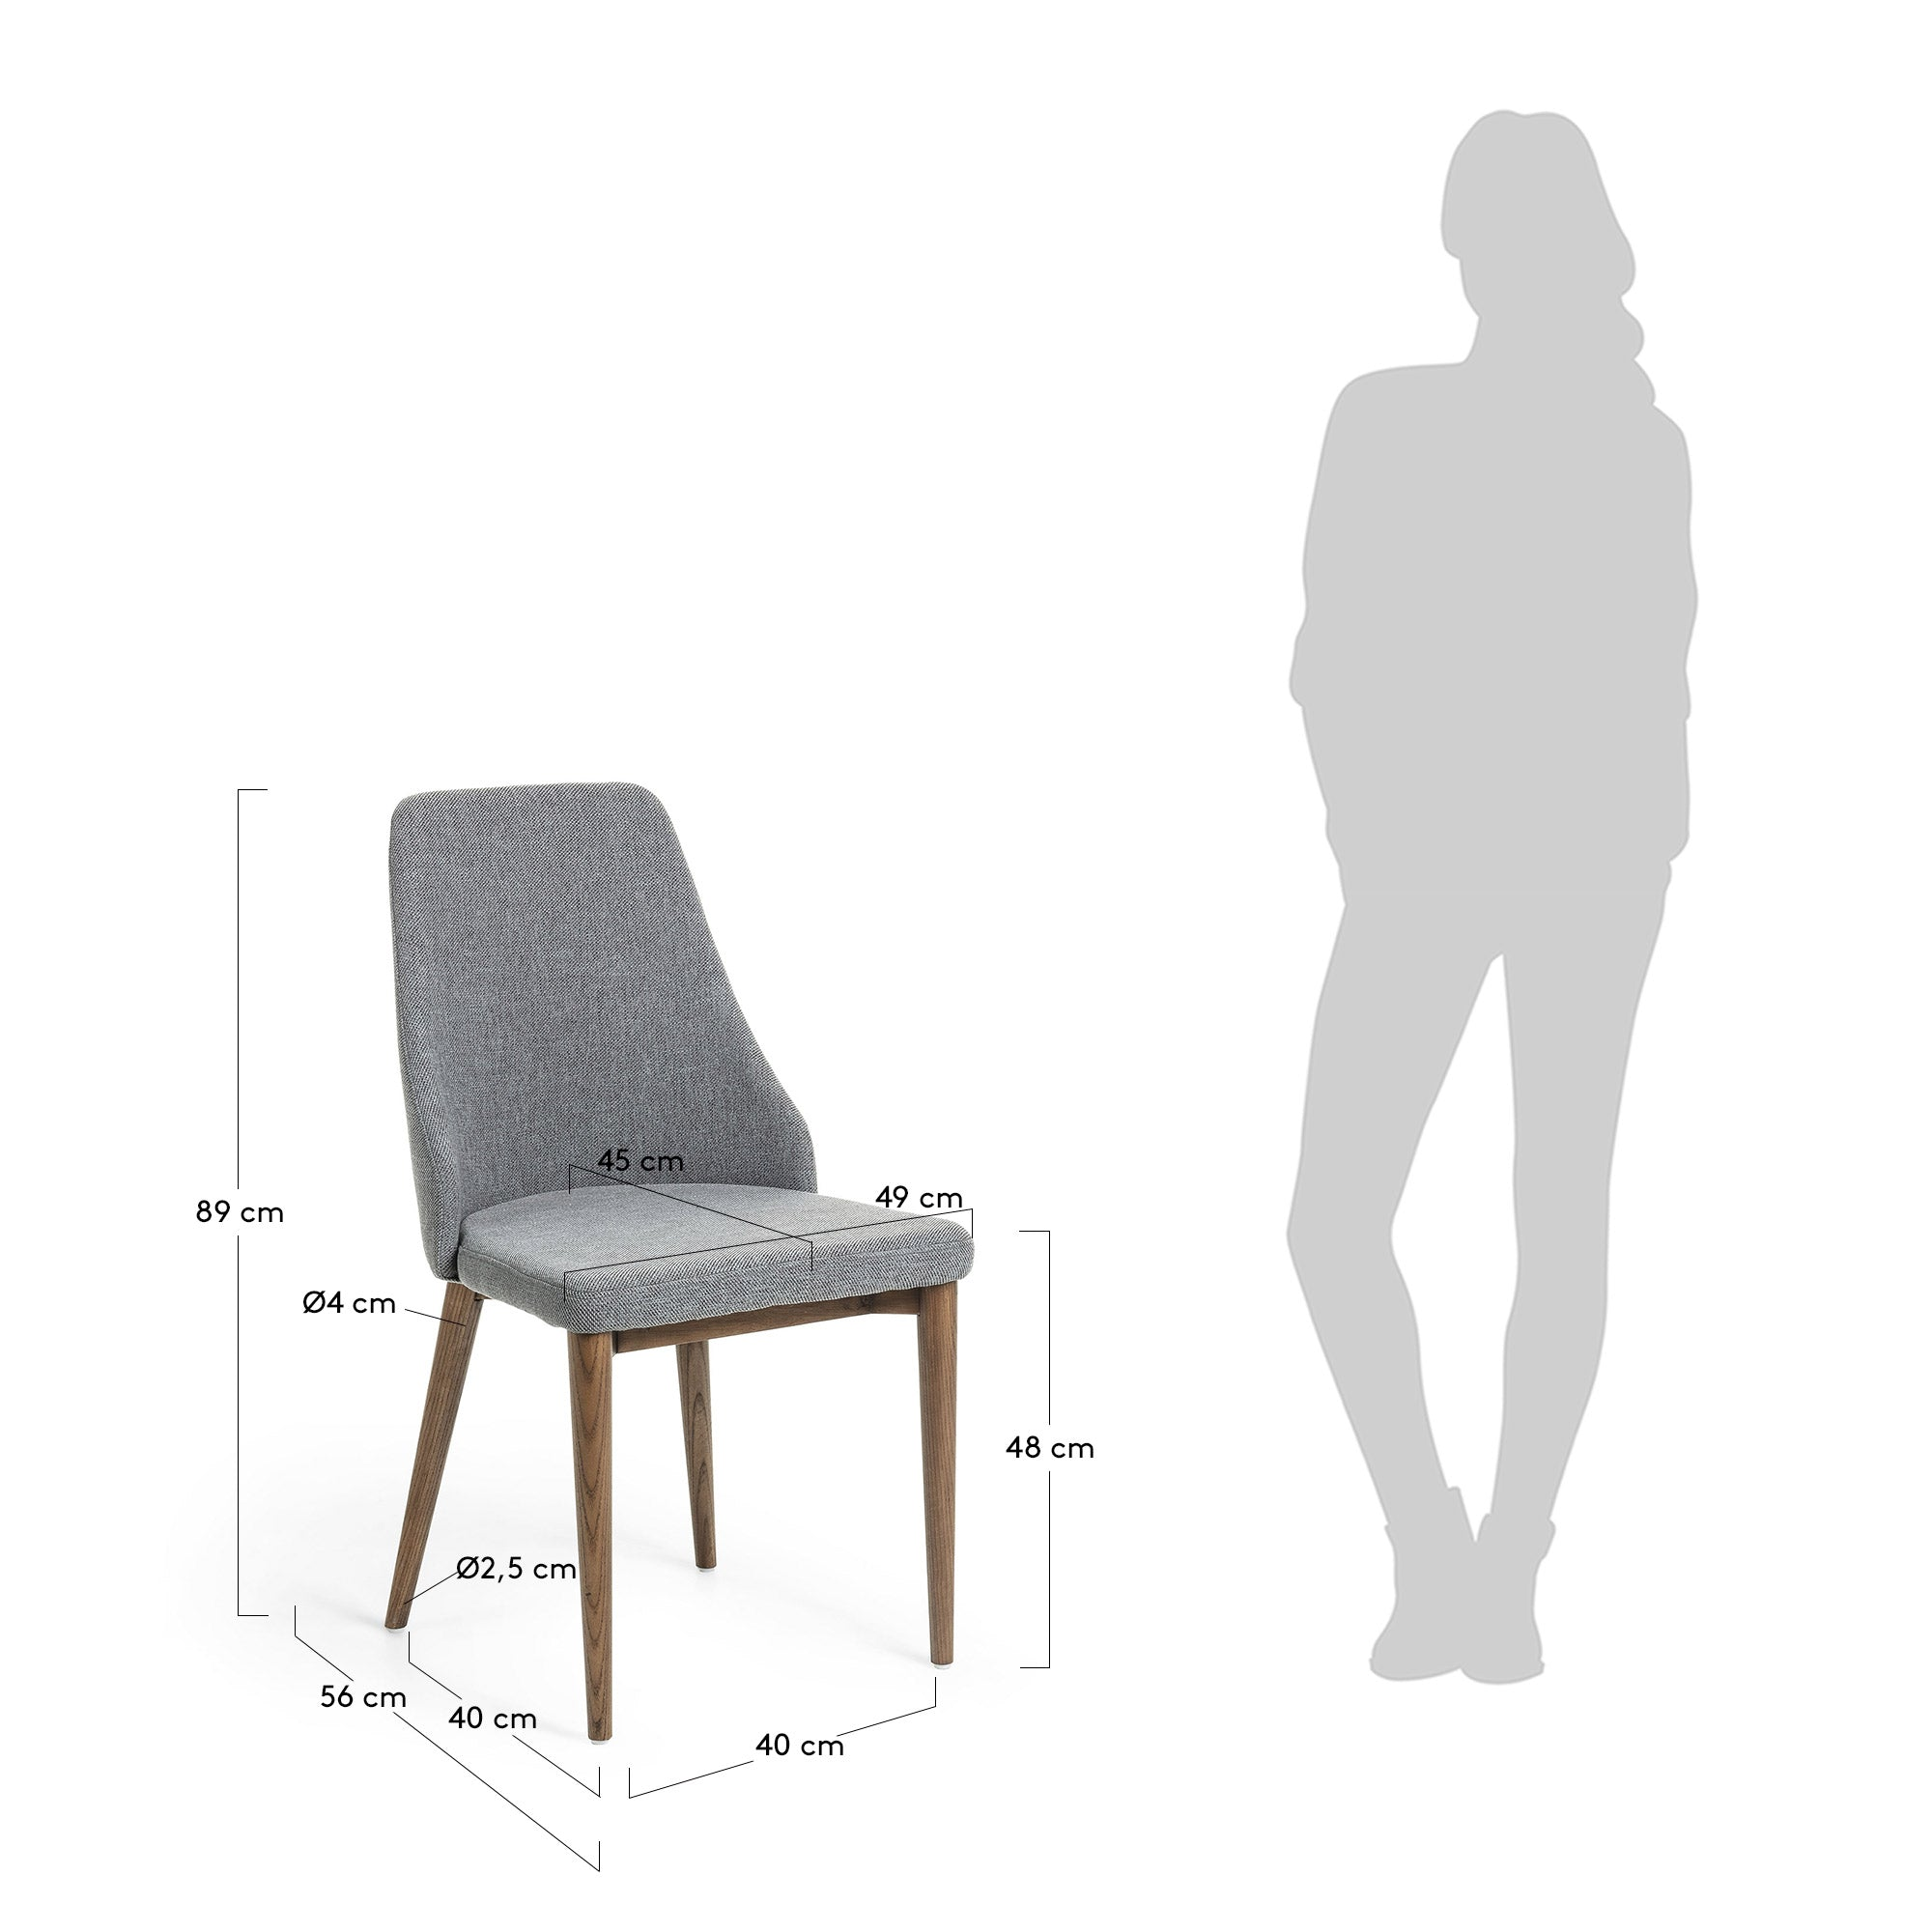 Roxette Chair LIght Grey Fabric with Walnut Leg